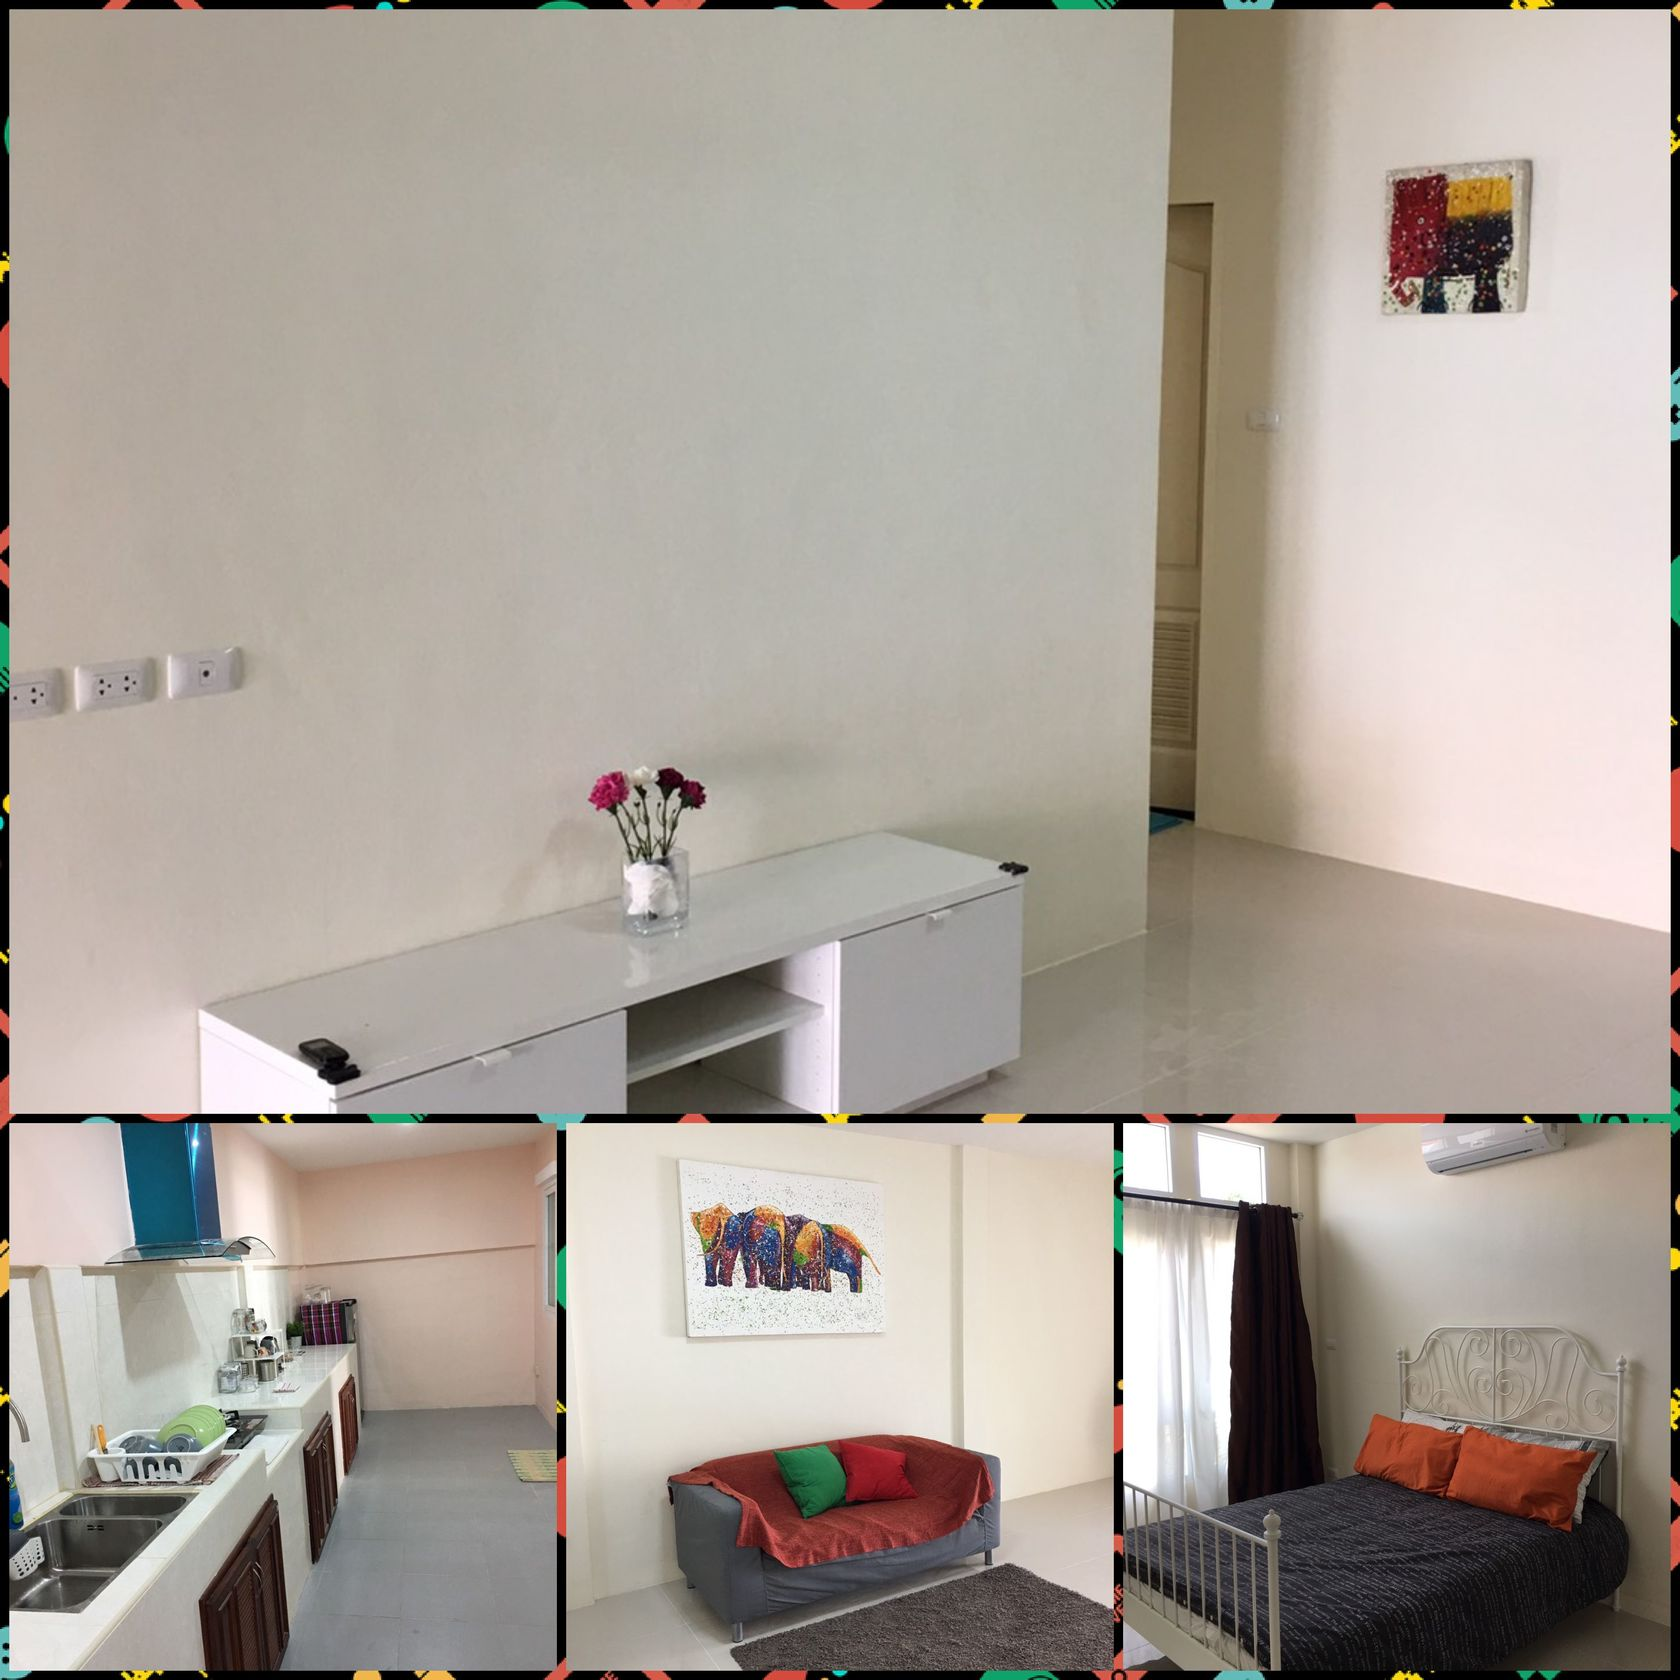 3 bedroom house In THALANG  for rent 6 months or more…..fully furnished fully aircon FIRST LET 15000 per month